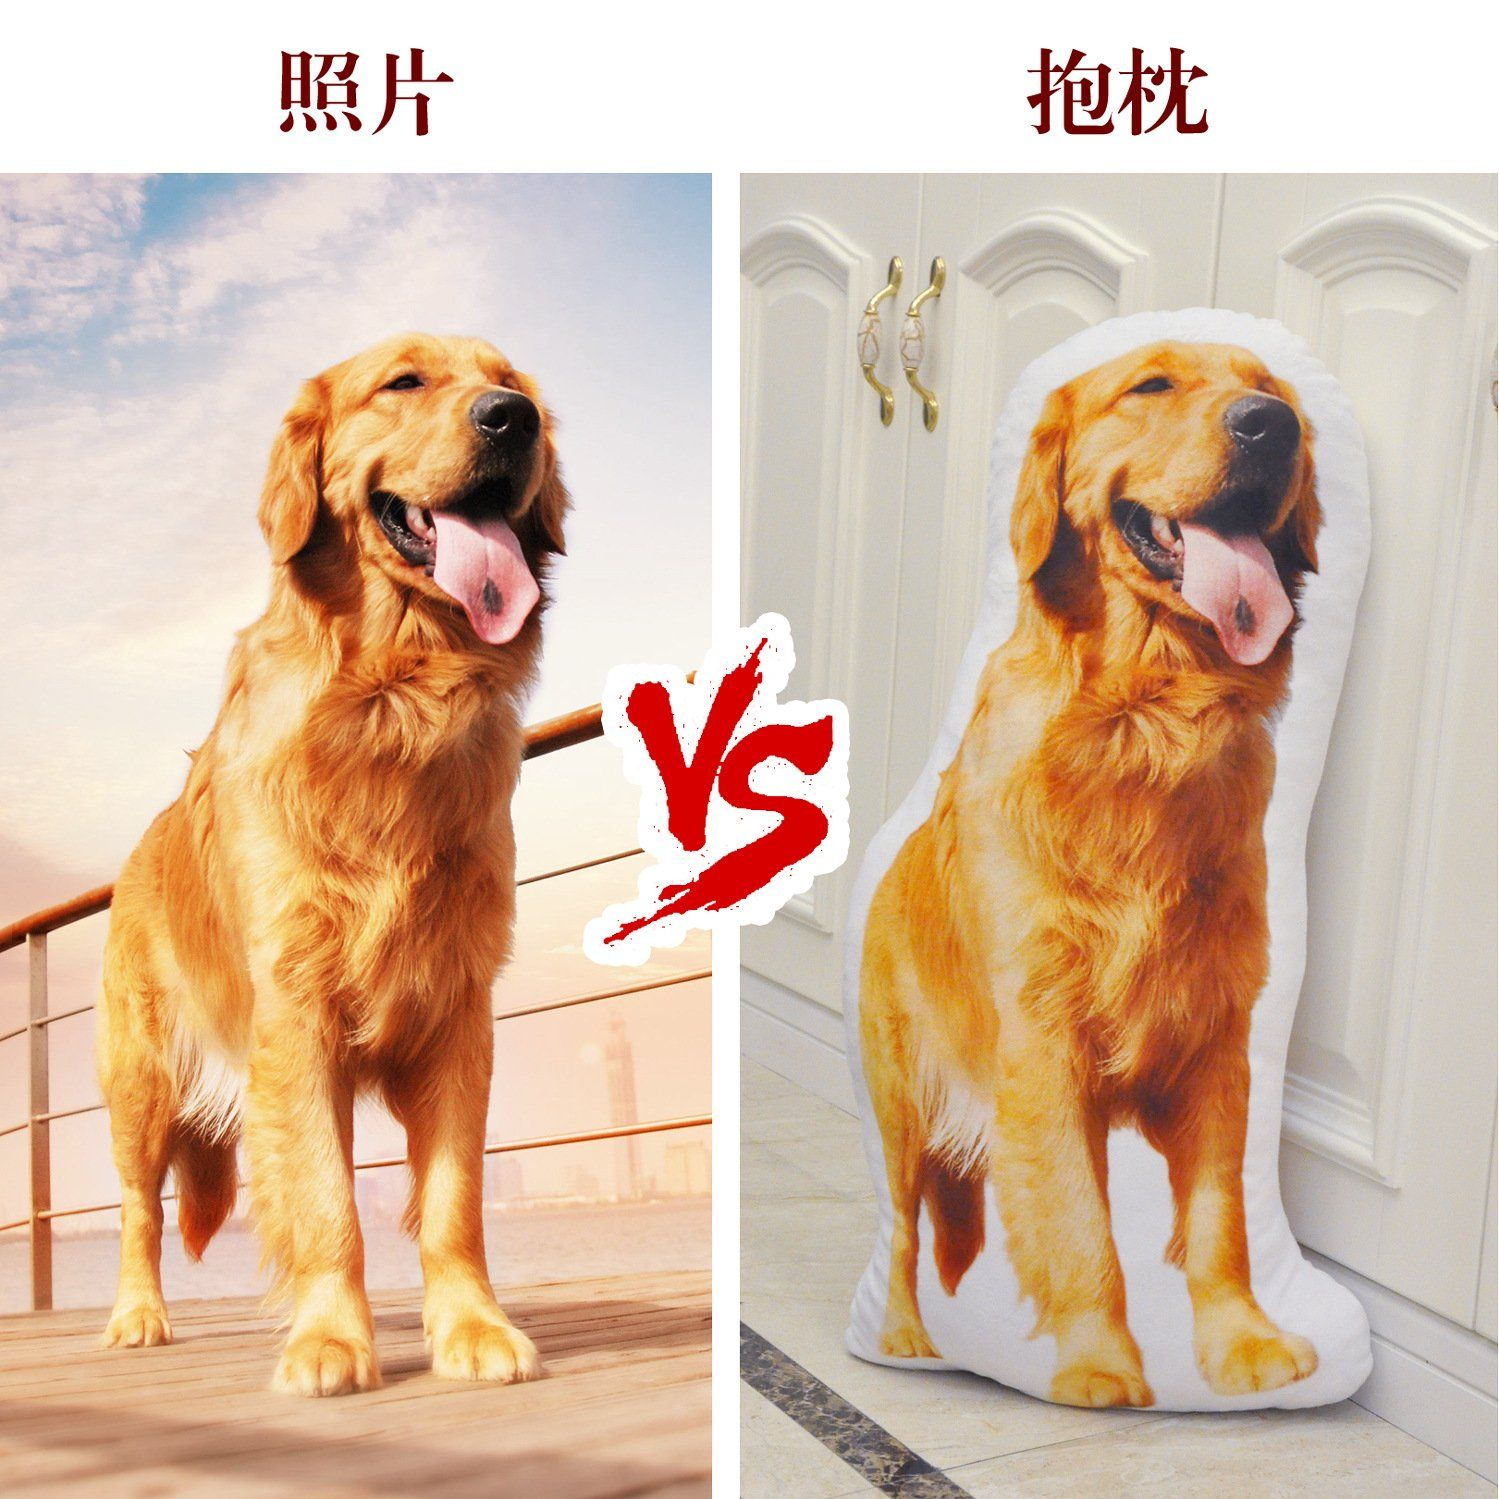 Pet Pillow With Photo Customization Pet Shaped Decoration For Cats, Dogs, Birds & More - 4 Sizes - your photos / 62cm